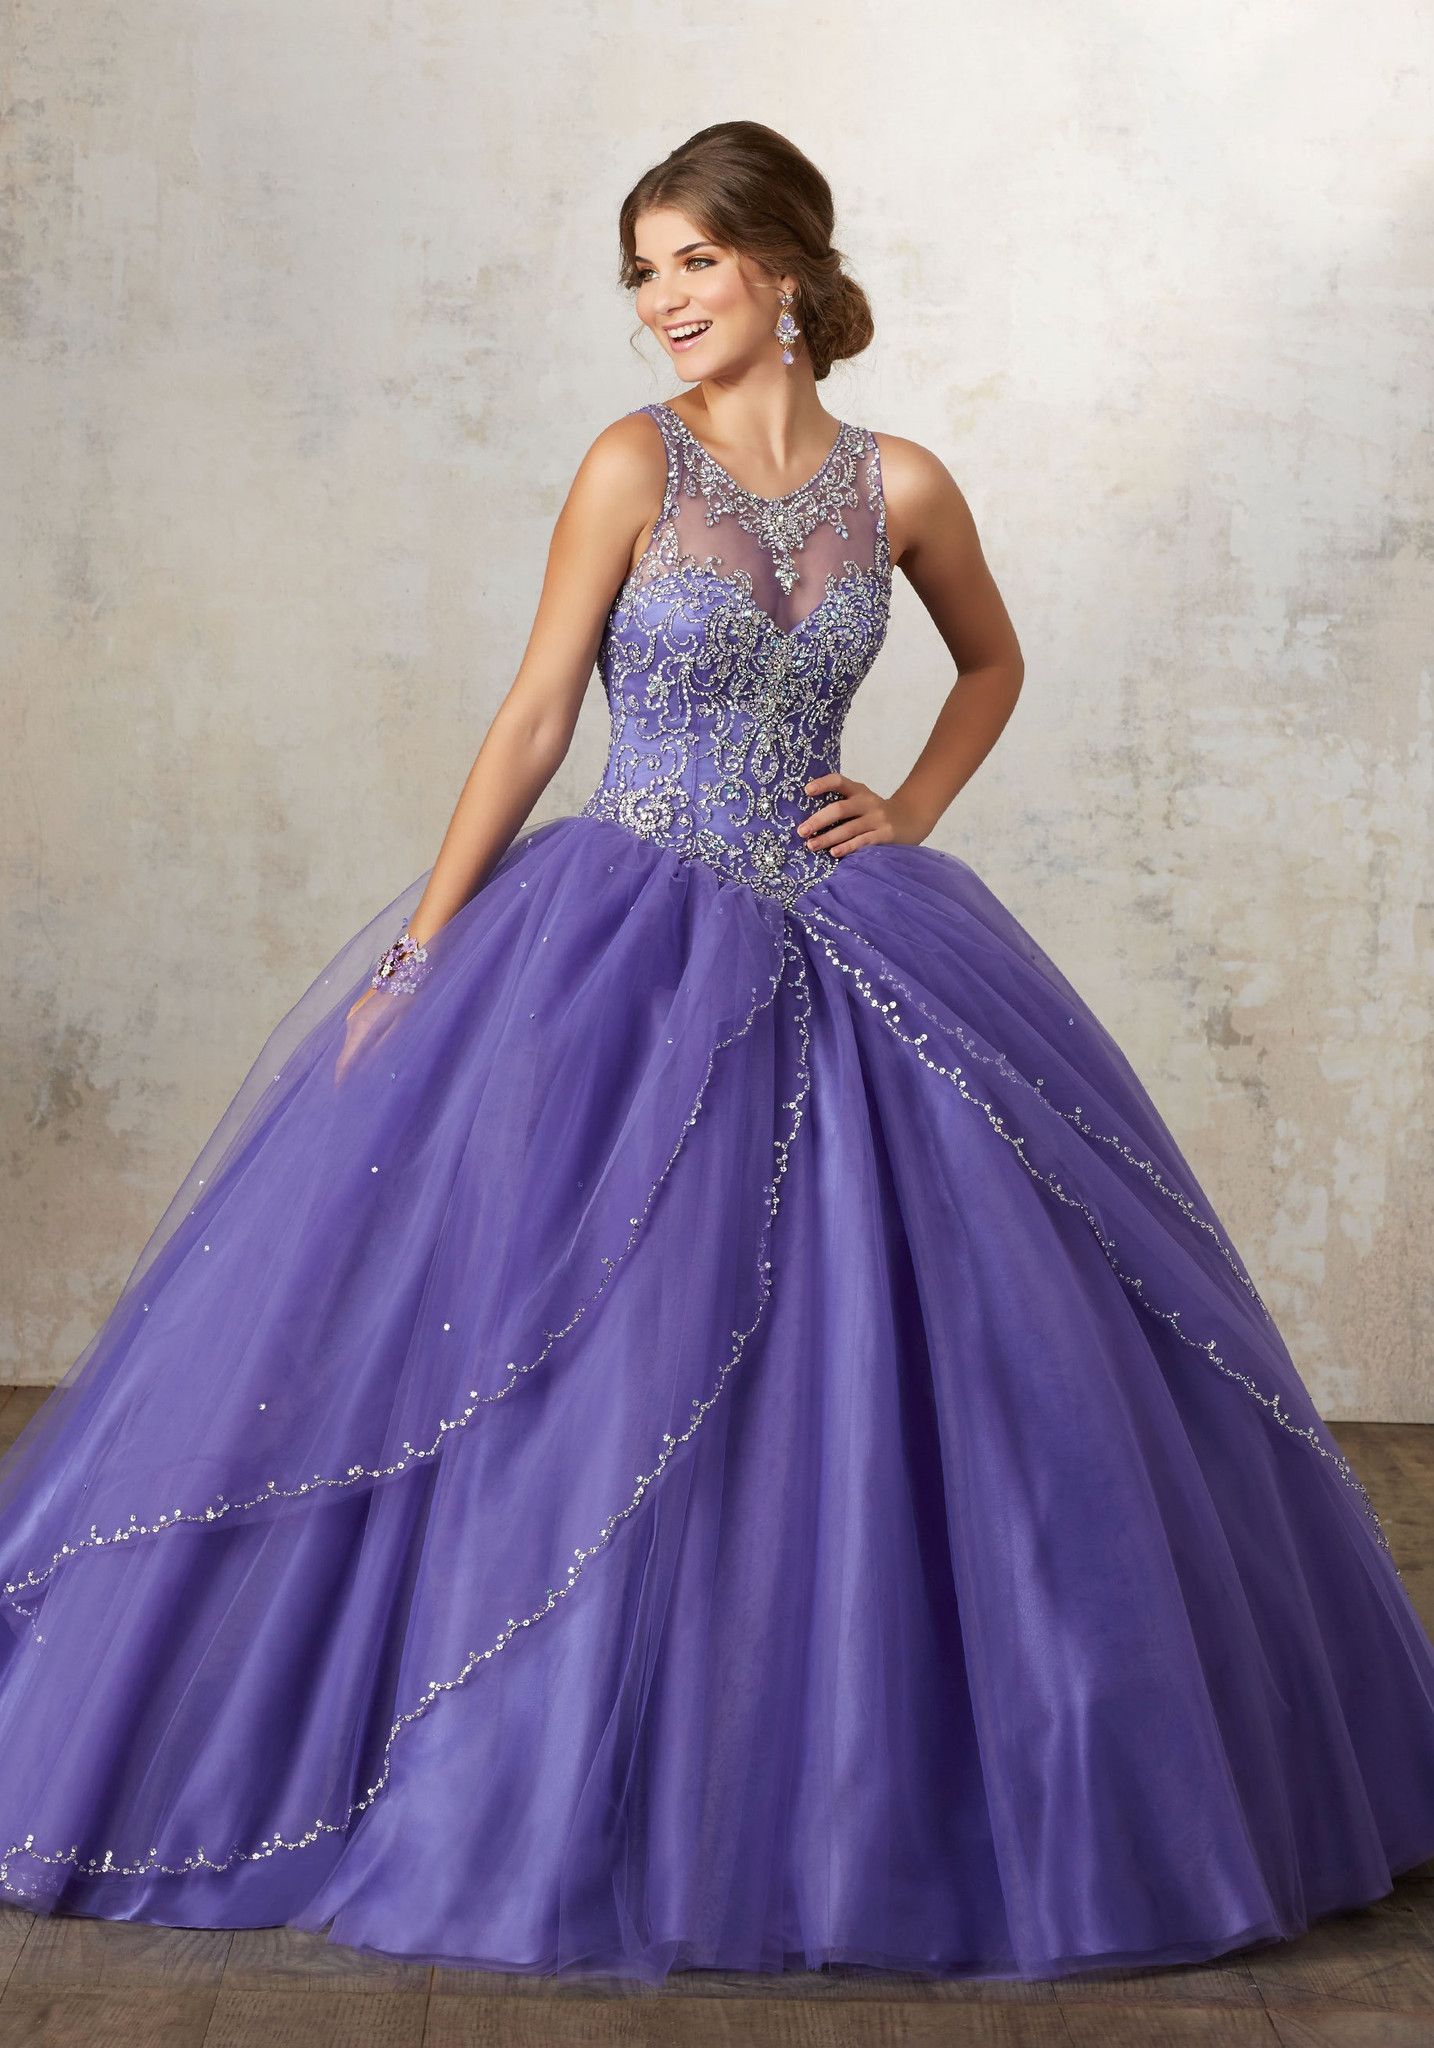 Mori Lee Quinceanera Dress 89127 | Pinterest | Mori lee, Quinceanera ...